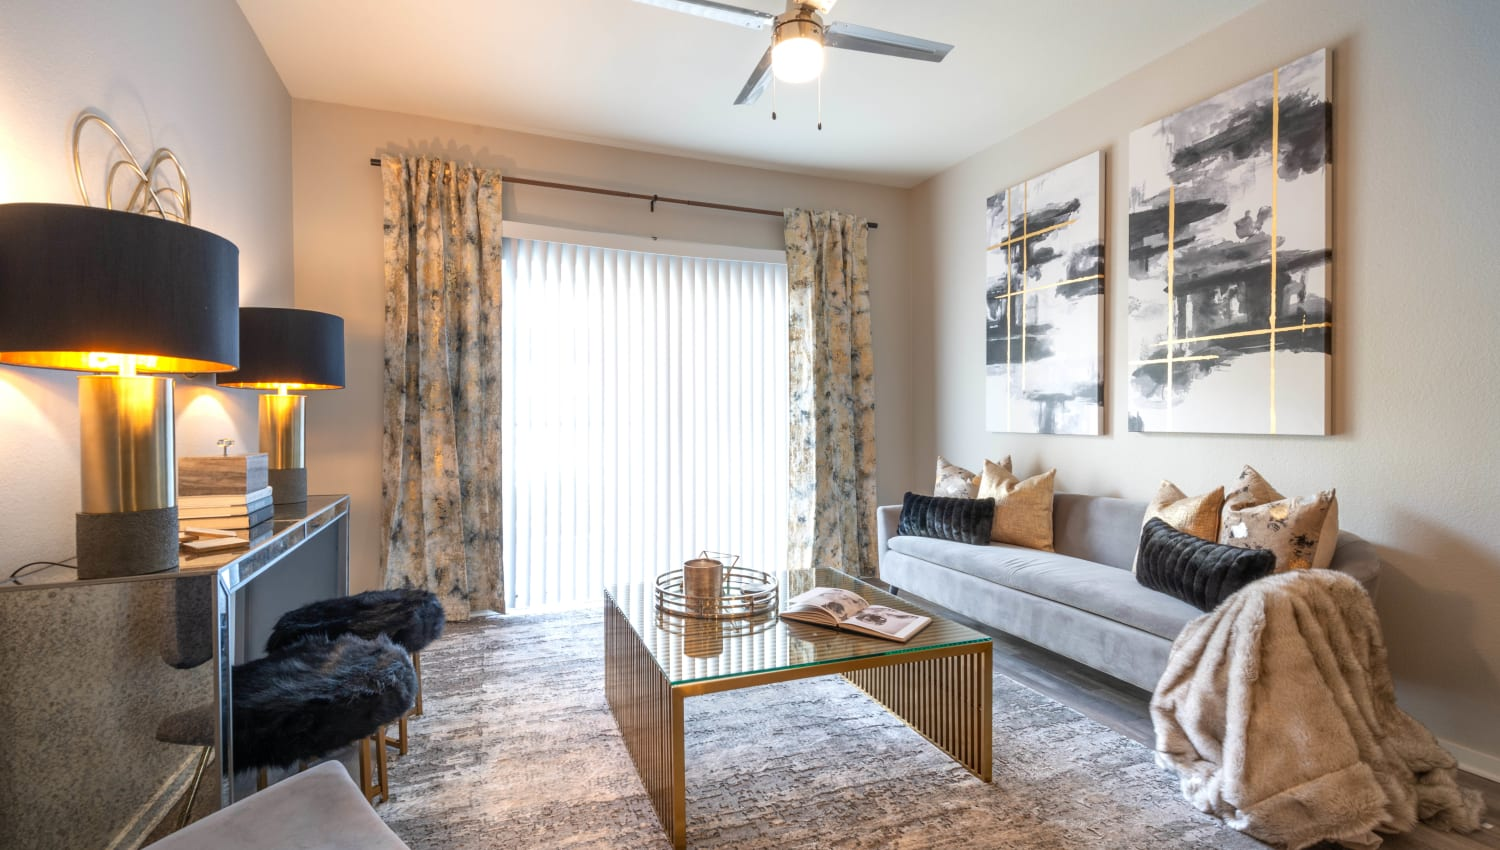 Well-furnished model home's living space with a ceiling fan at Olympus Solaire in Albuquerque, New Mexico